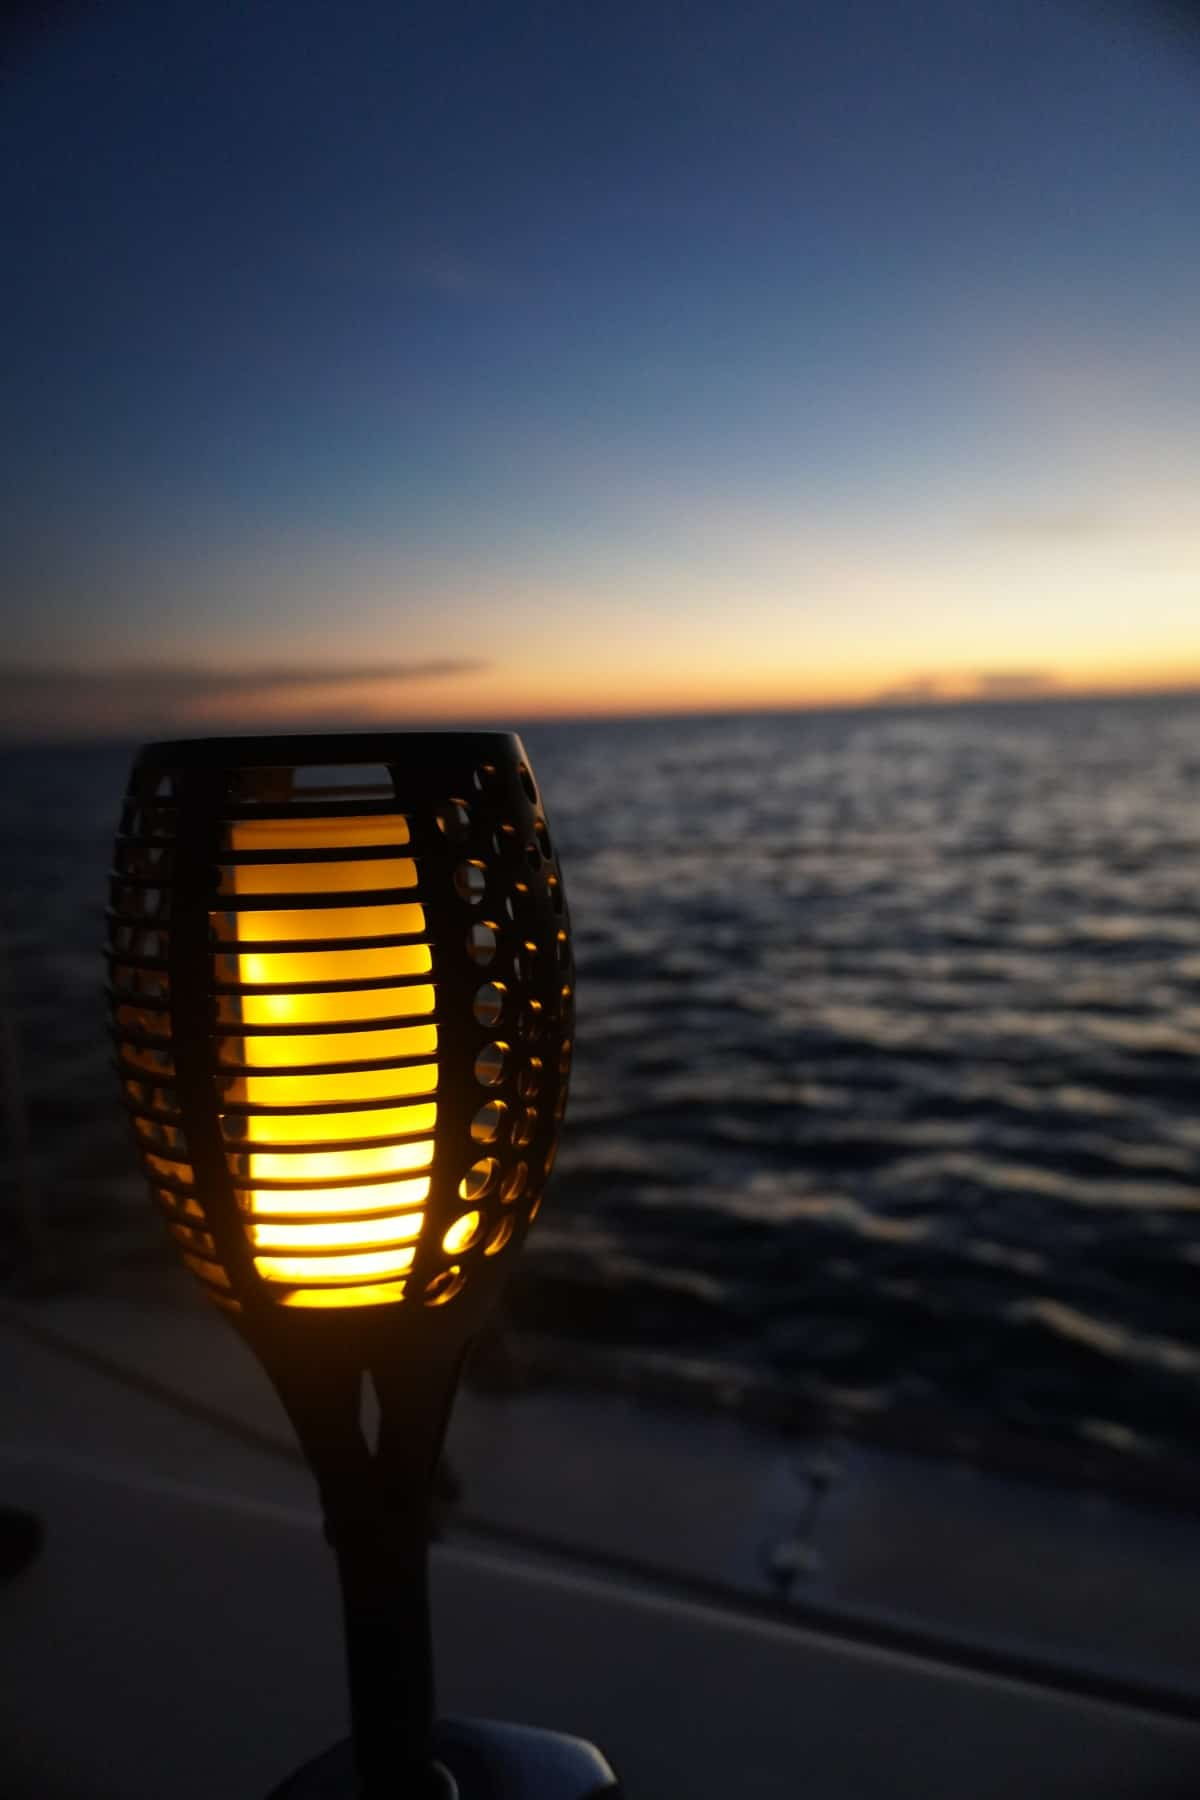 Sunset aboard a sailboat is so special - open-water sailing Key West to Dry Tortugas